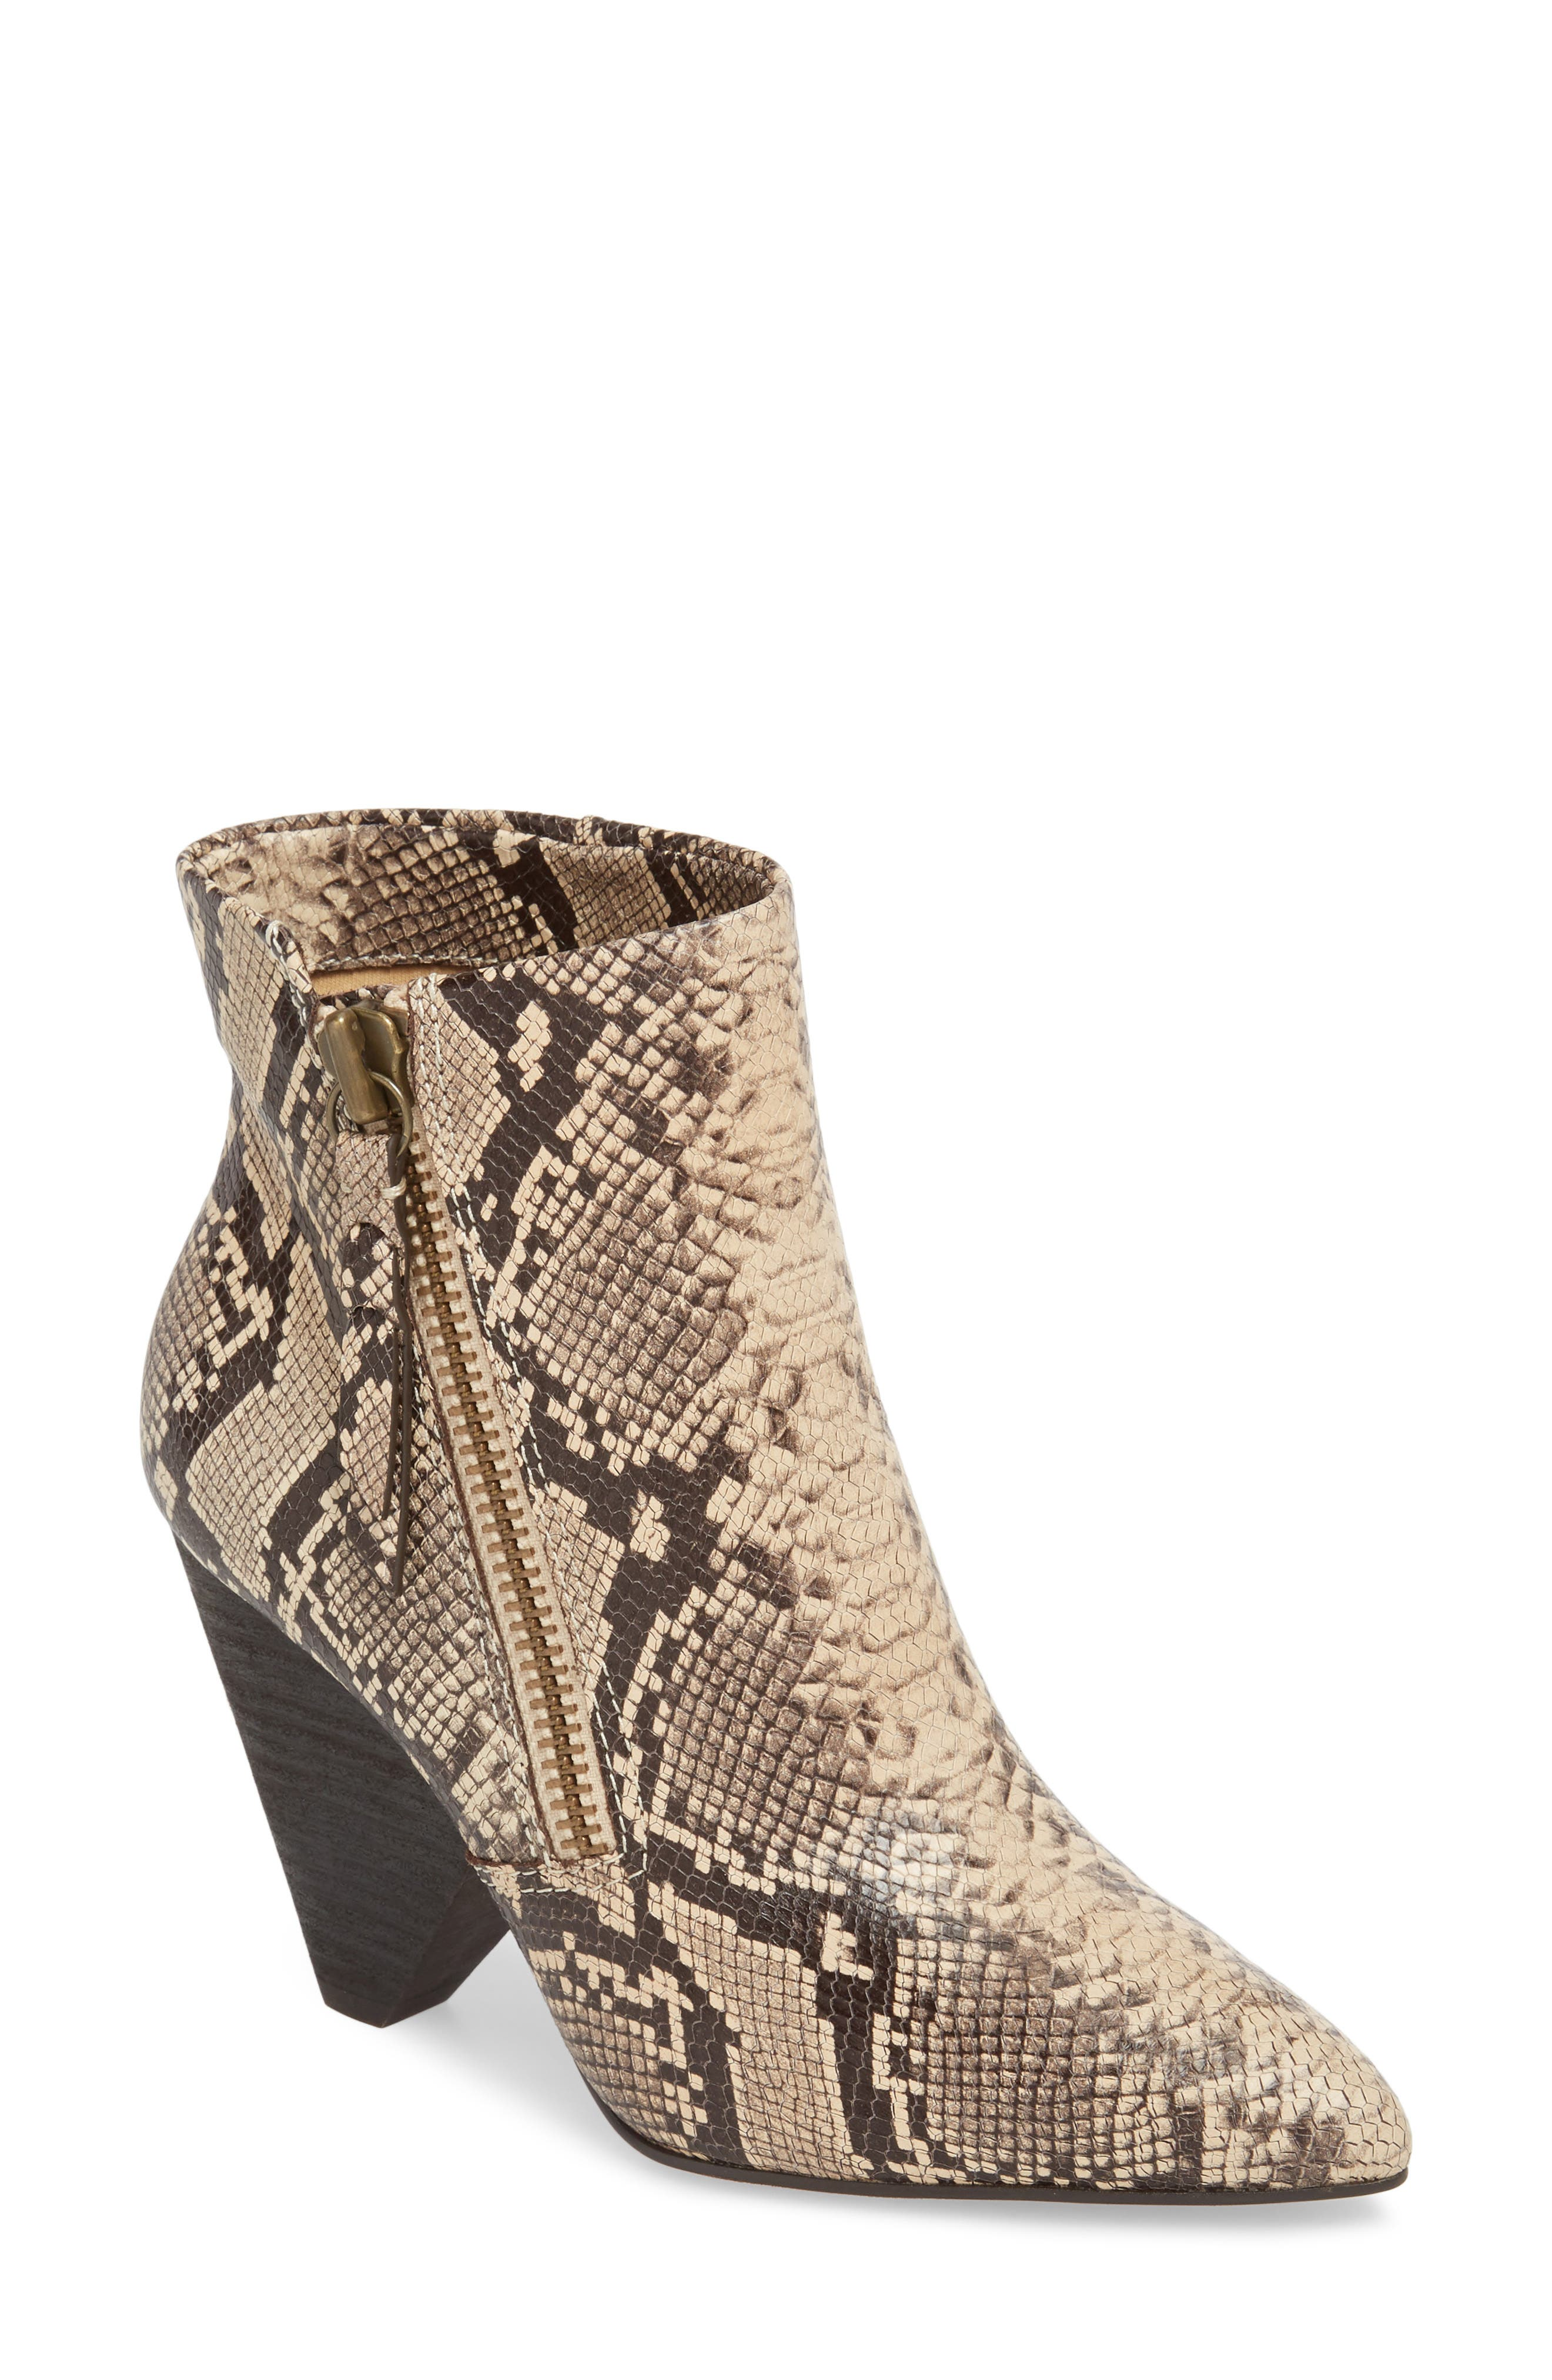 Neva II Bootie,                         Main,                         color, Natural Embossed Snake Leather